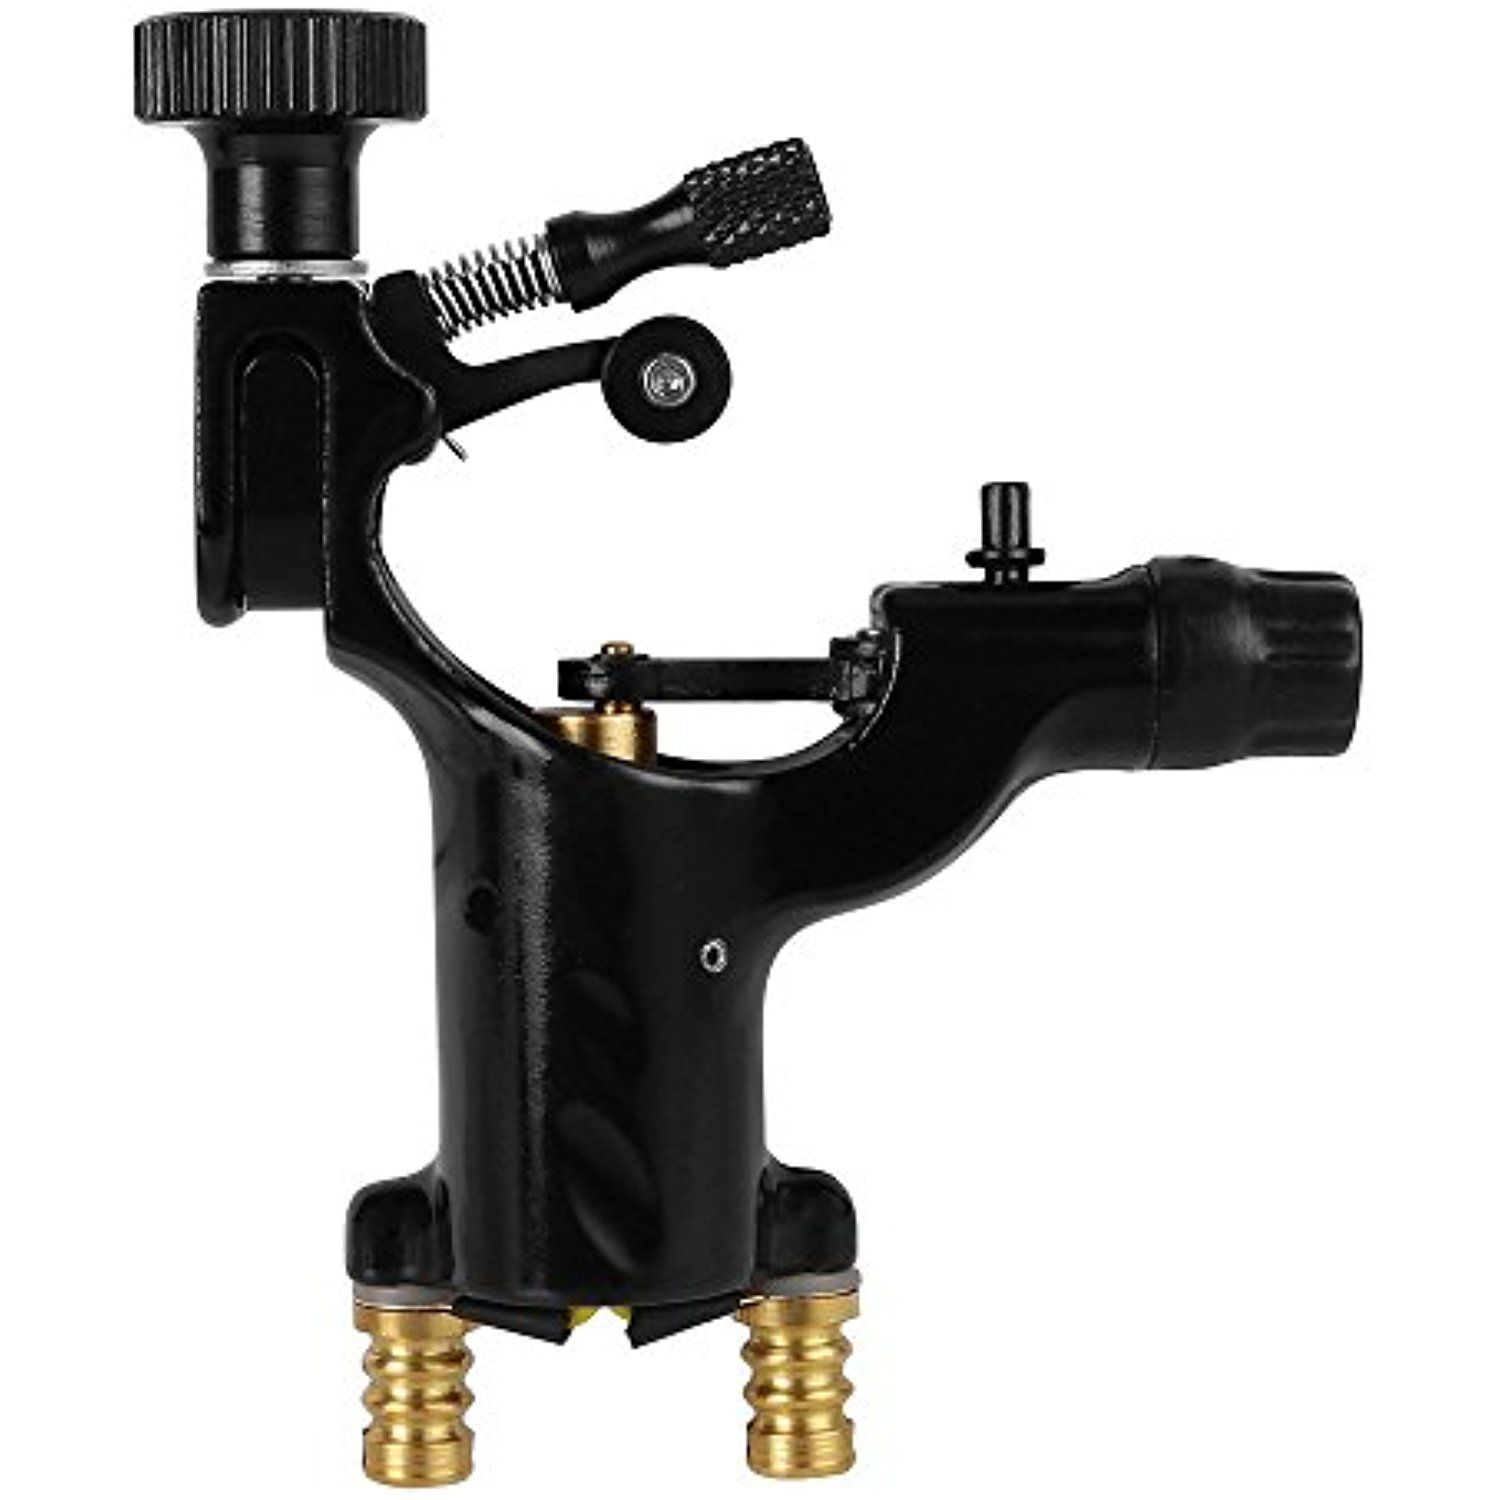 Hommii professional dragonfly rotary tattoo machine for